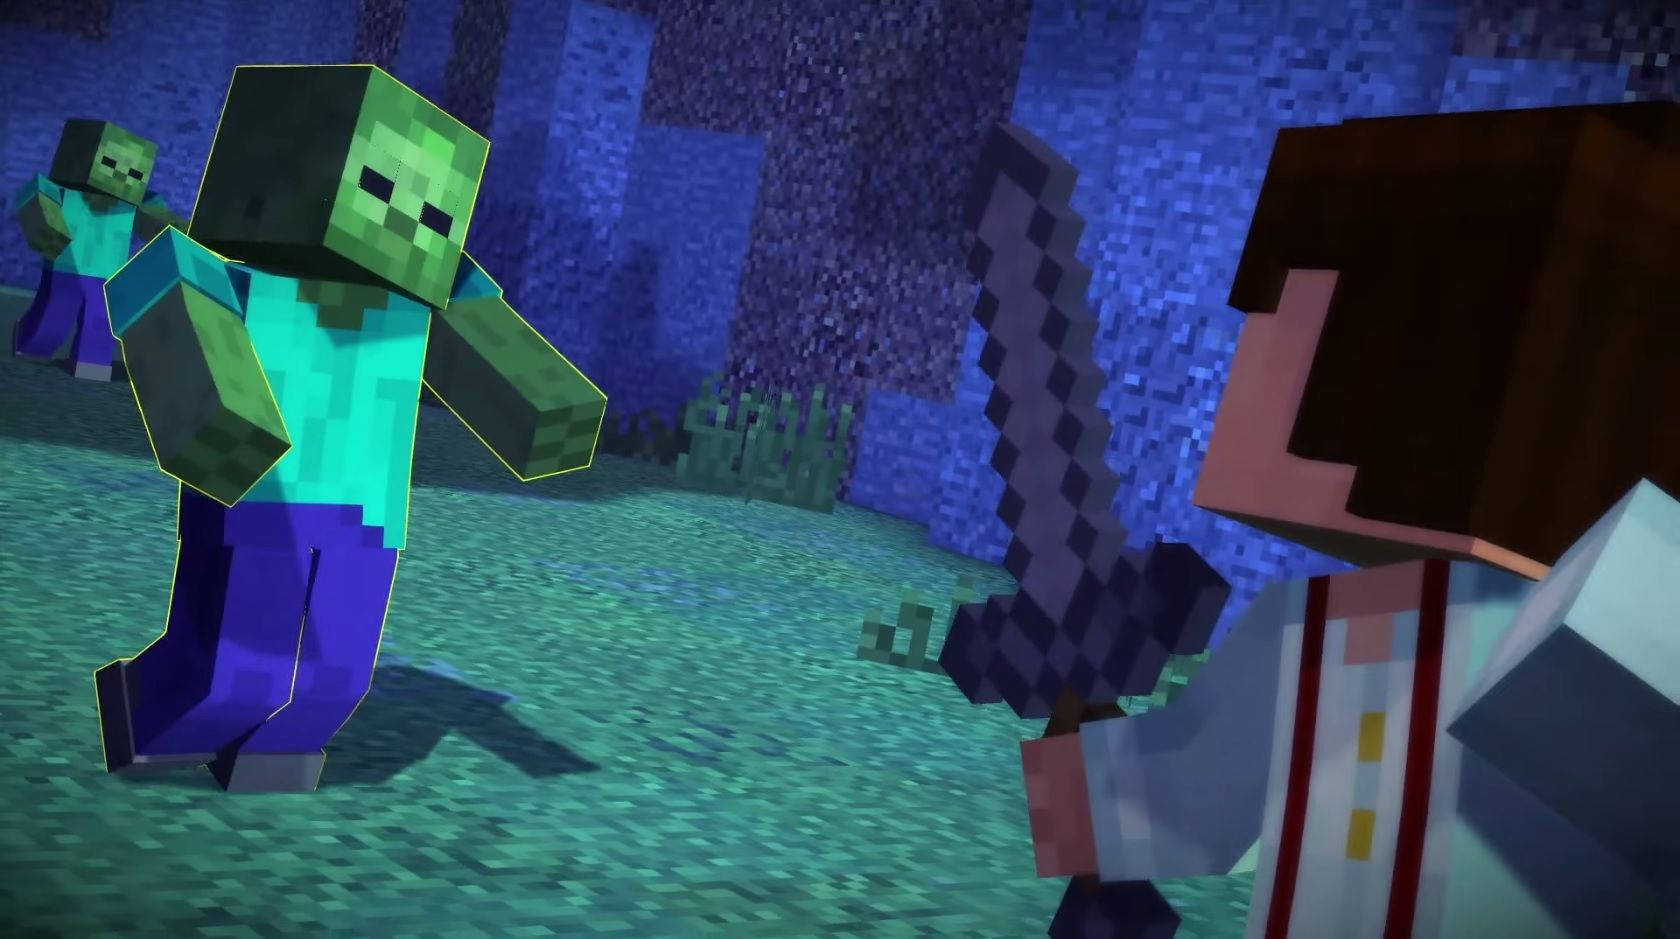 Download Minecraft: Story Mode Full Version - A 5 episode adventure game  series set in